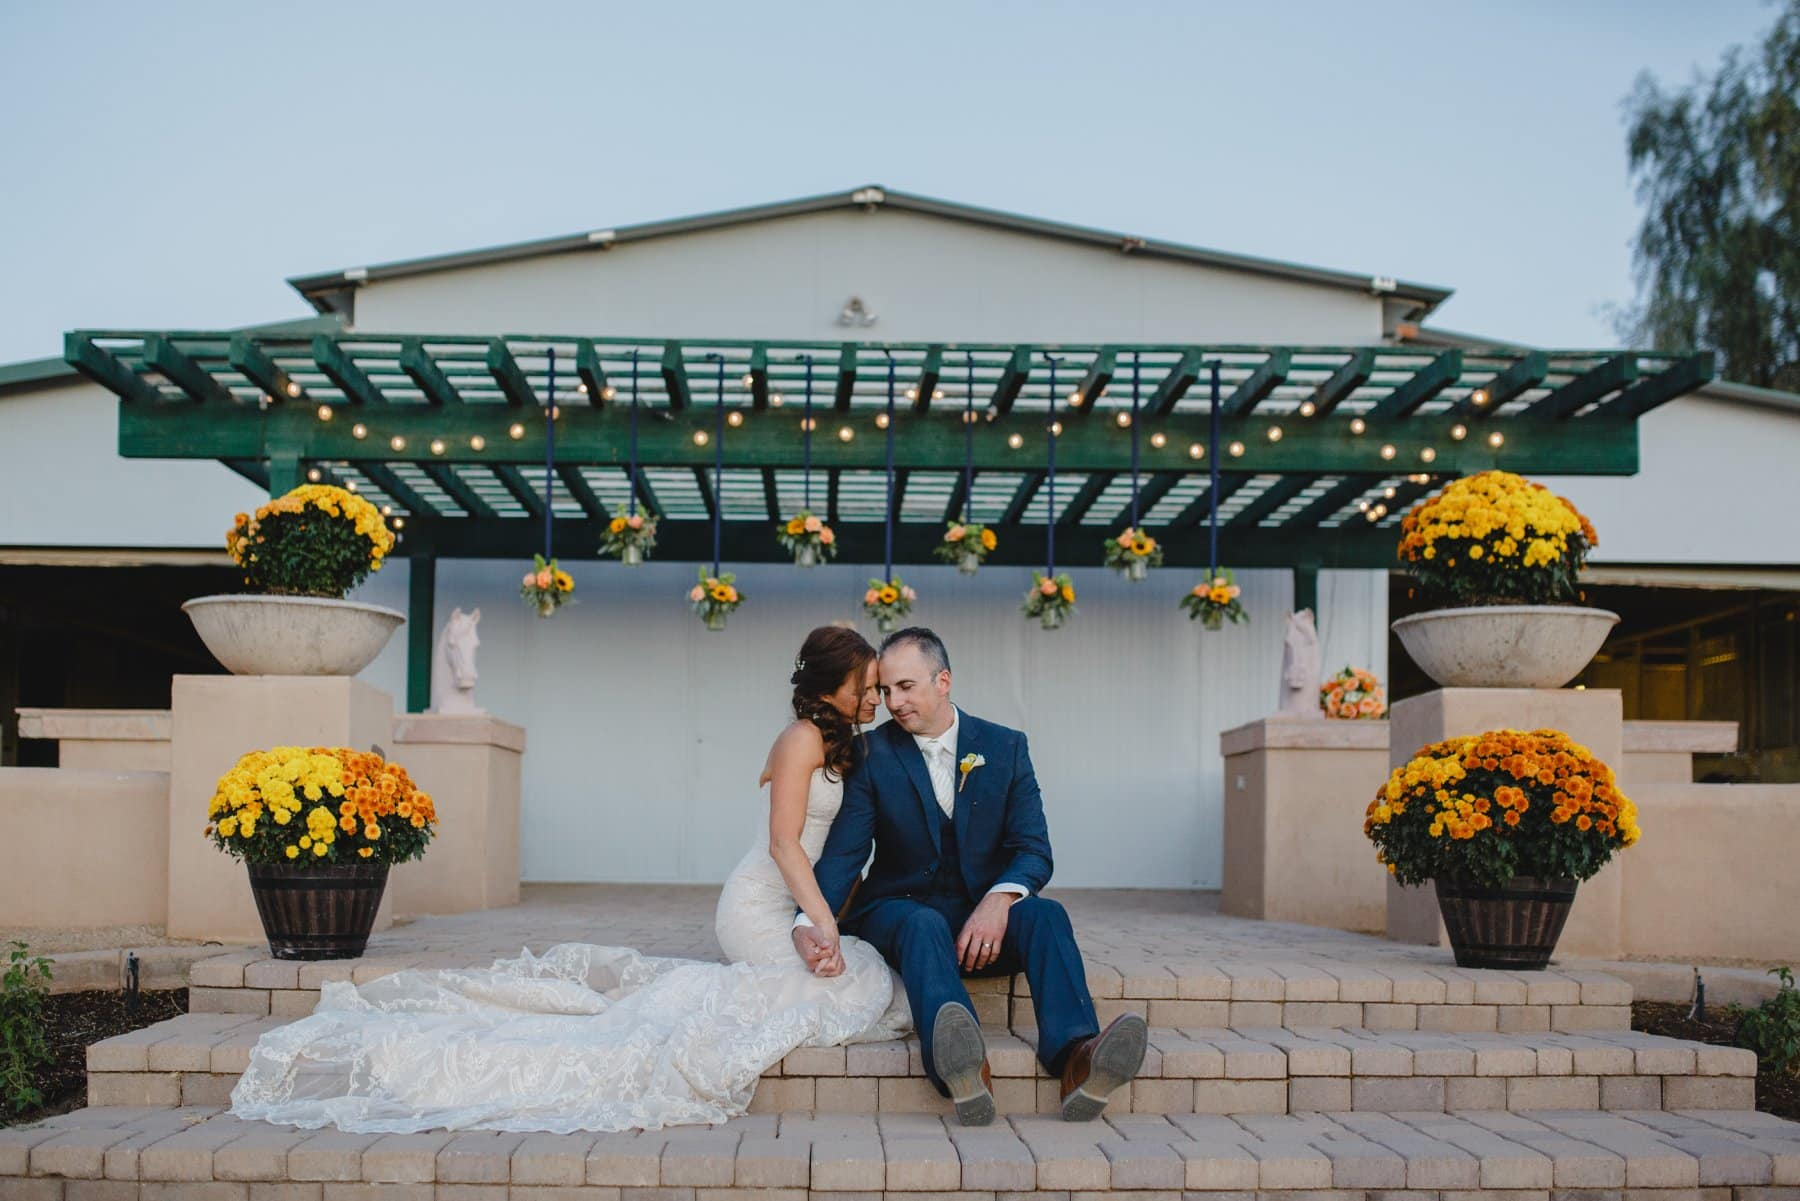 rustic elegant small wedding at a horse barn in Cave Creek, AZ